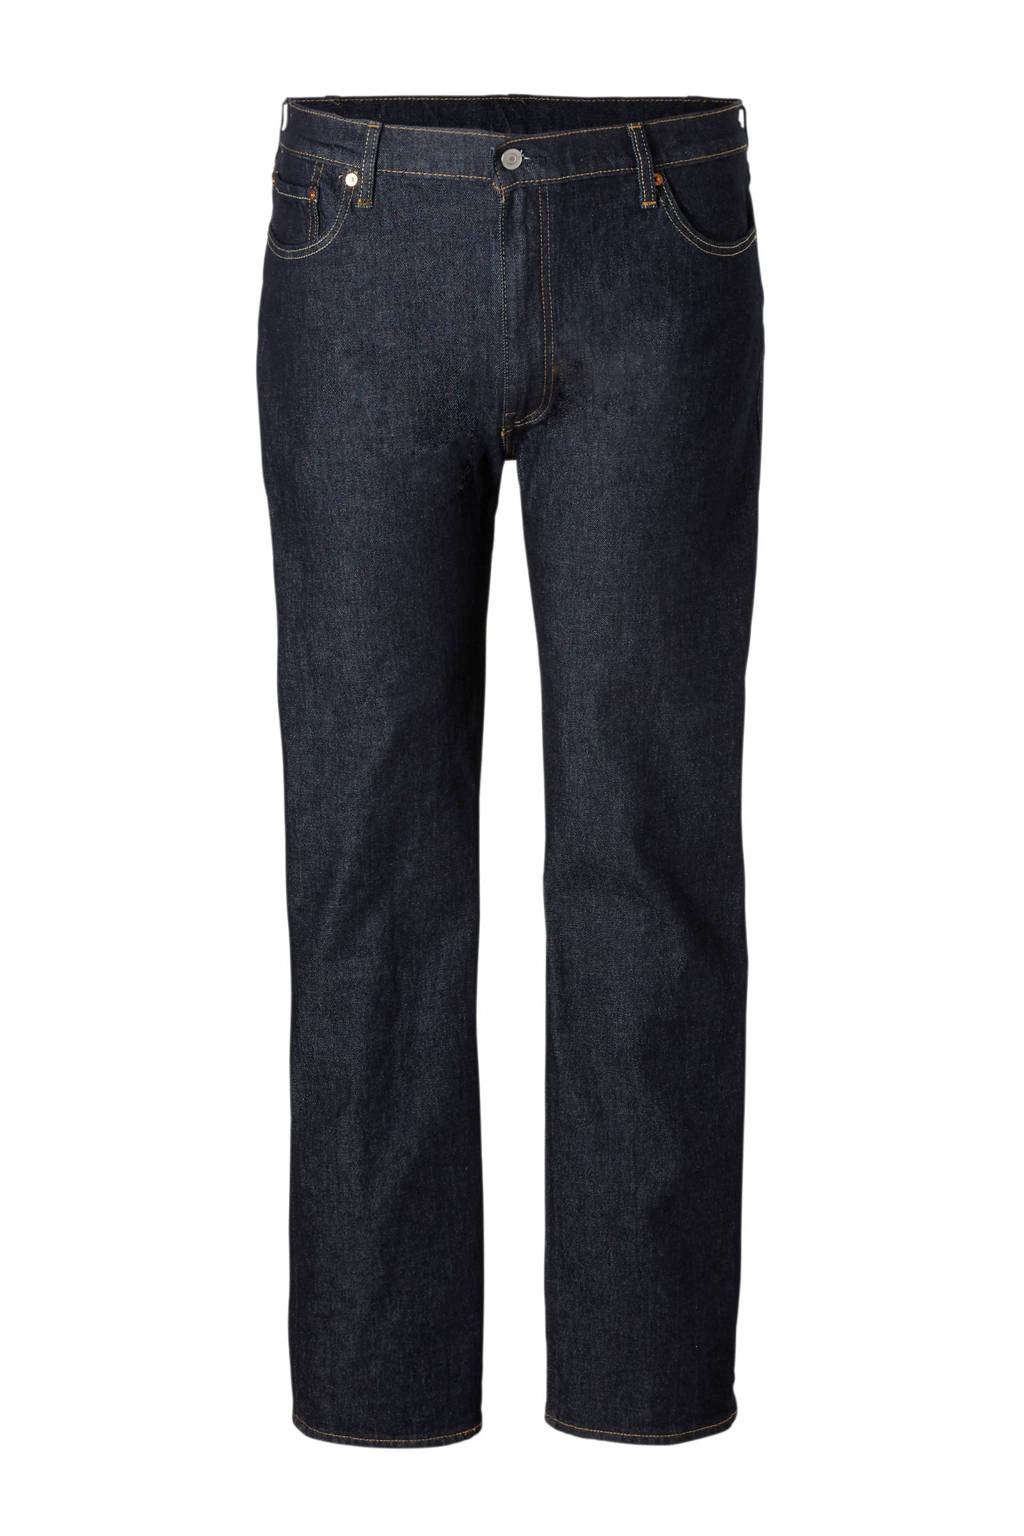 Levi's Big and Tall 514 straight fit jeans, Roald Rinse 4-Way